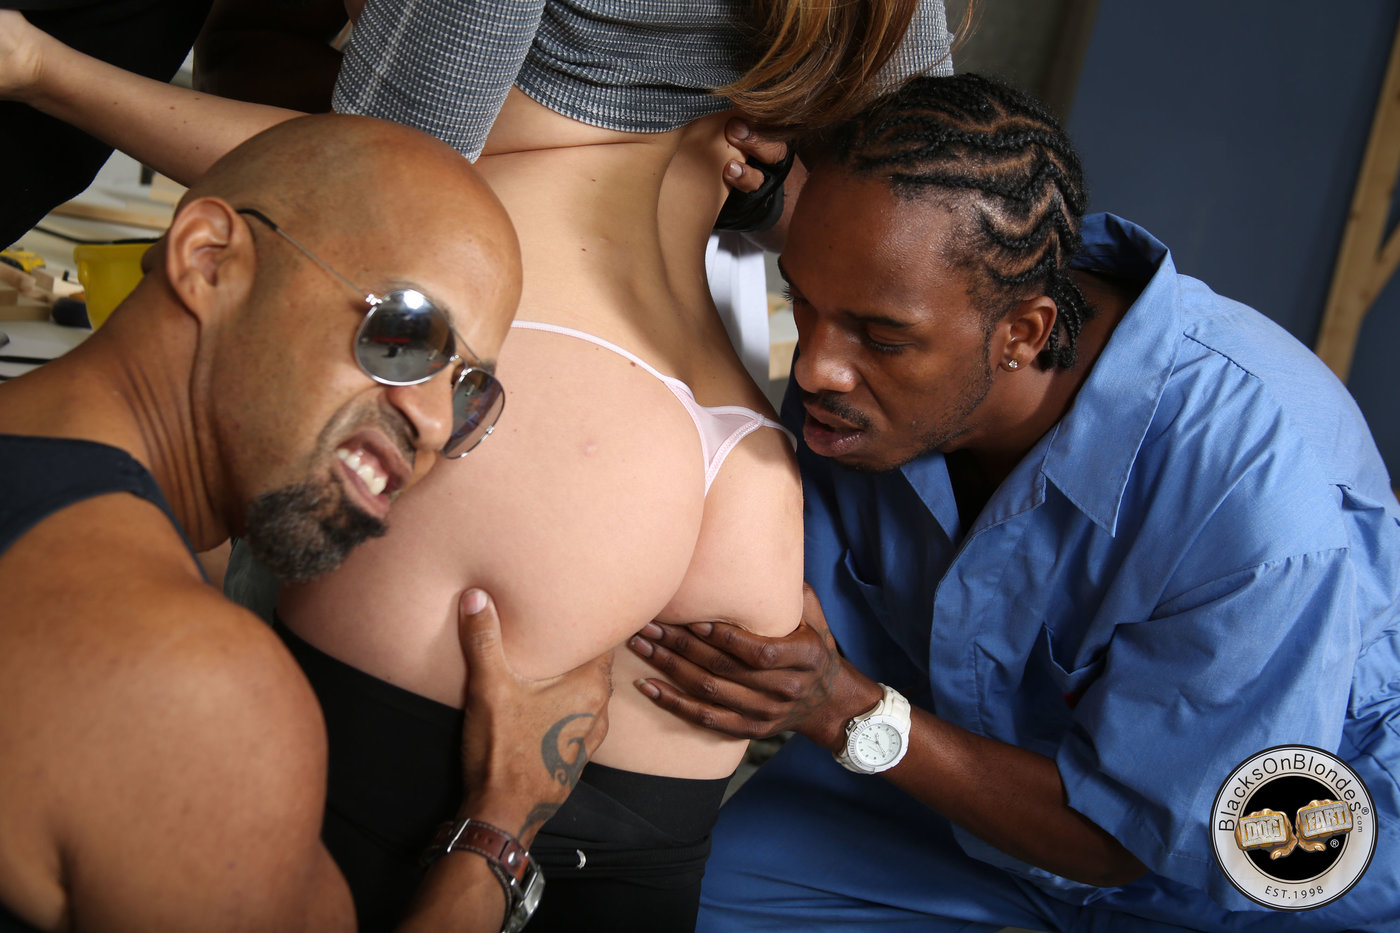 think, that you shemale creampies a guy bareback you tell you mistaken